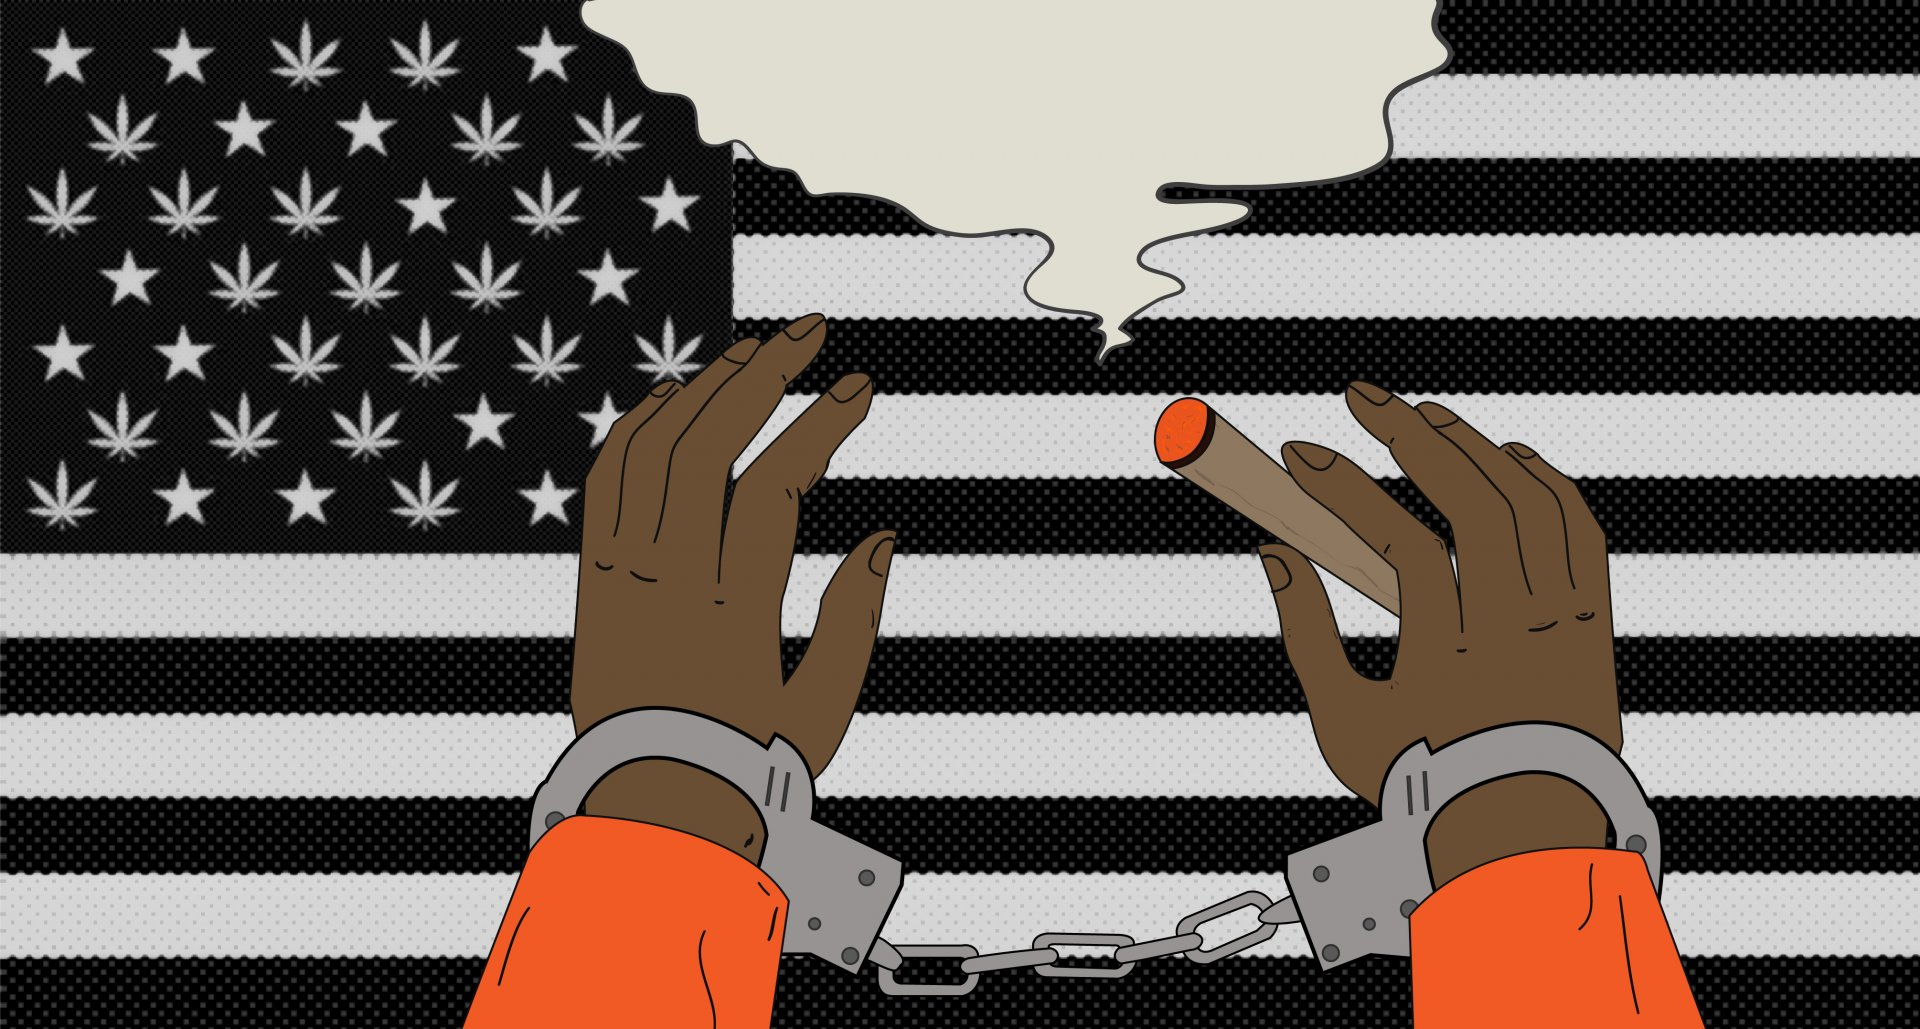 Black individuals are four times as likely as white individuals to be arrested for marijuana use/possession in the United States despite similar usage rates. | Photo illustration by Deija Zavala